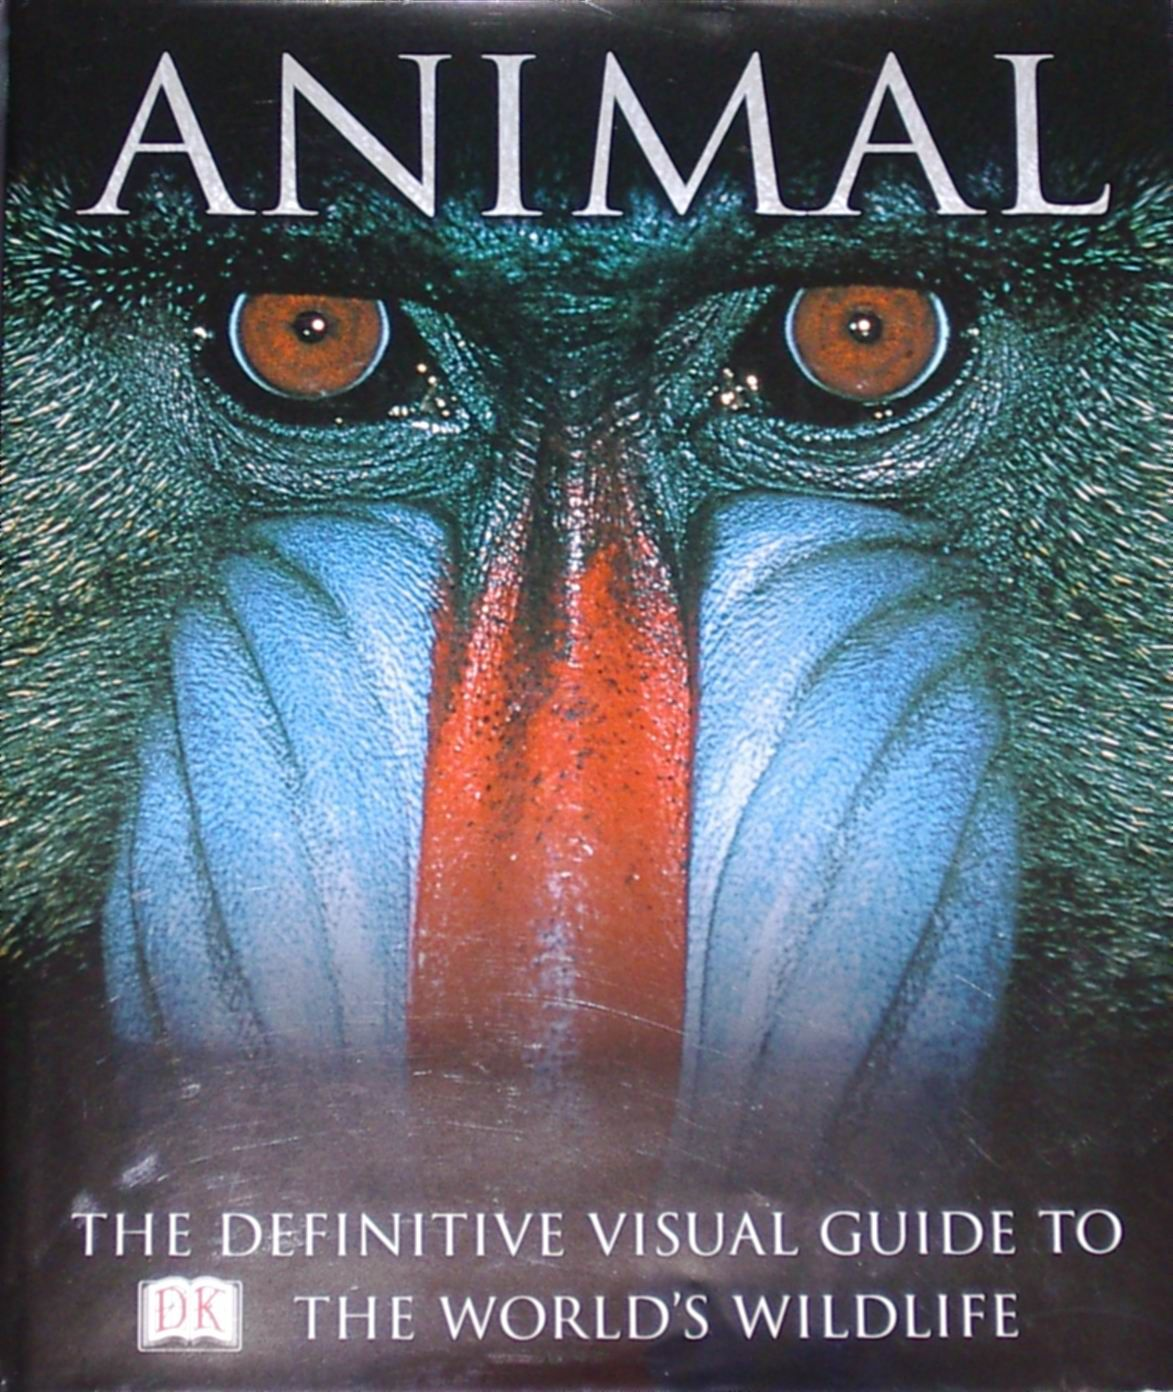 Animal Cover Image Pixels